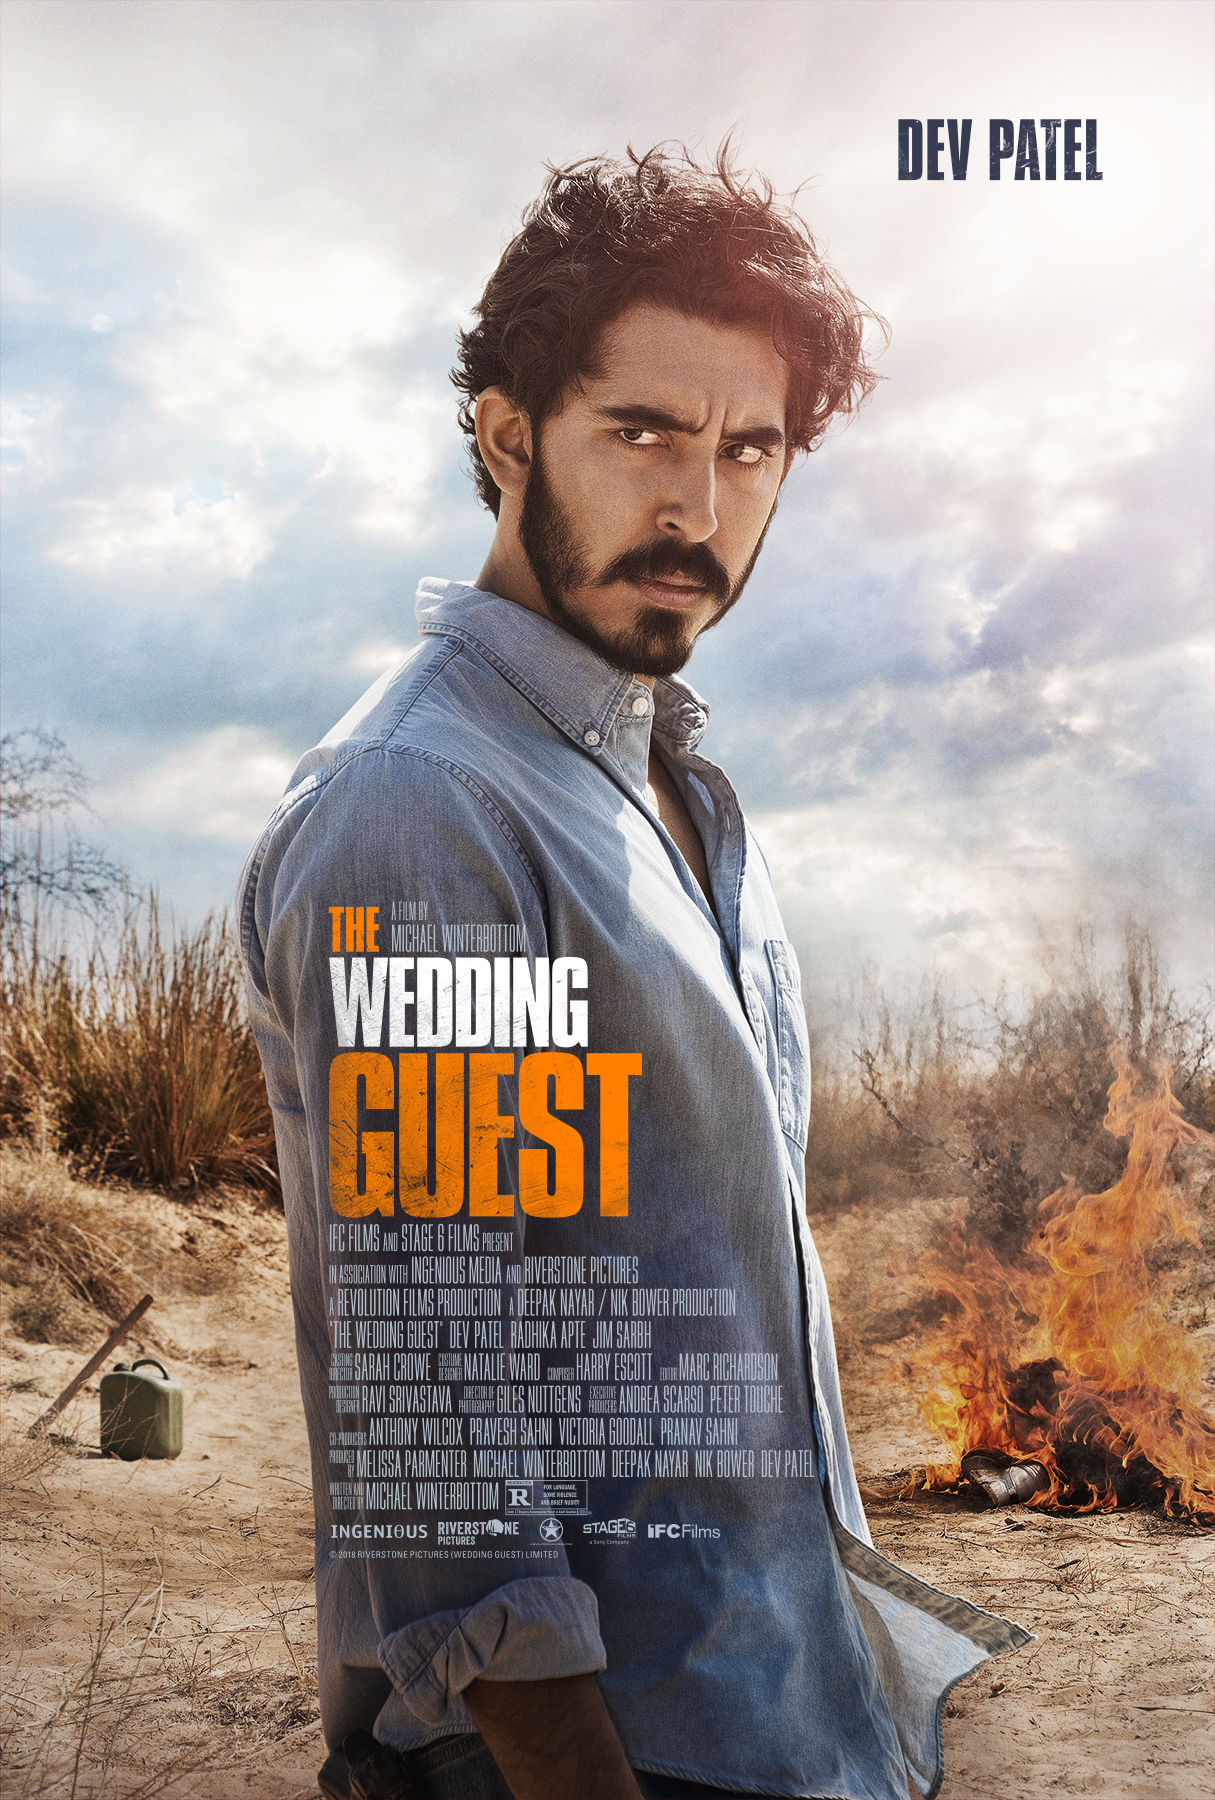 FOX MOVIES: THE WEDDING GUEST